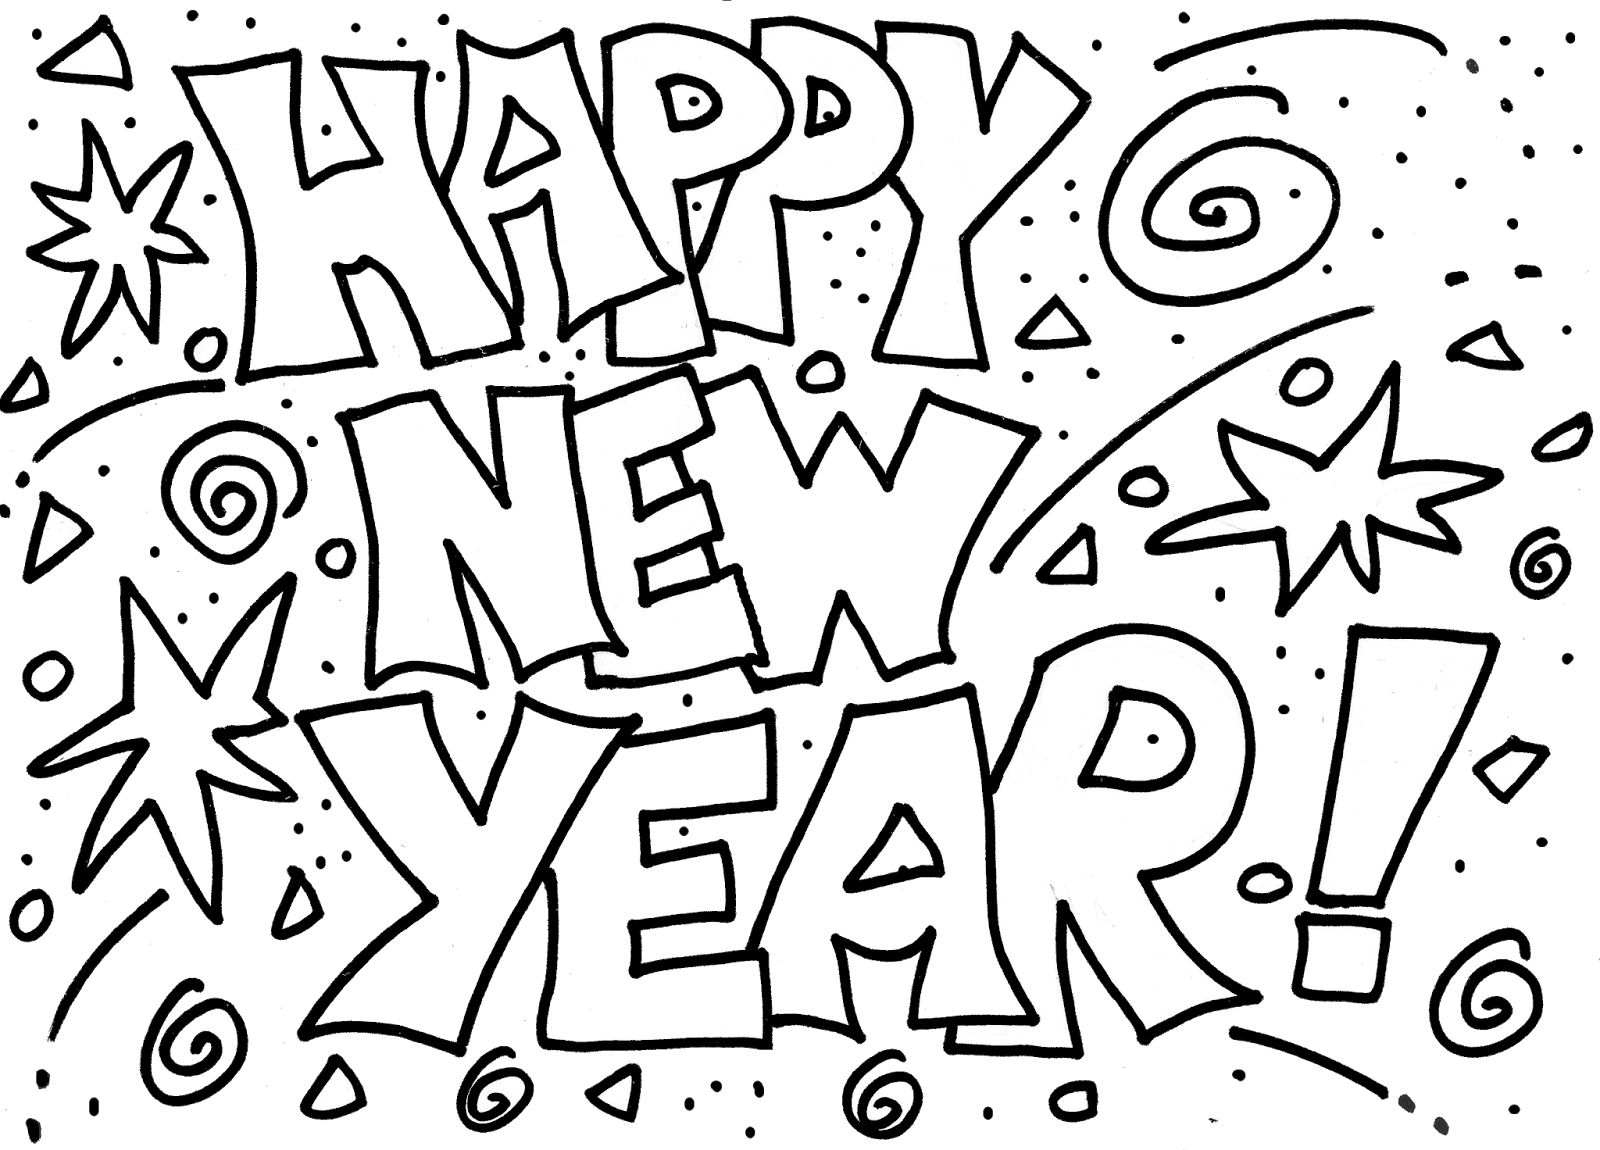 Happy New Year Coloring Pages Best Coloring Pages For Kids New Year Coloring Pages Happy New Year Images Preschool Coloring Pages